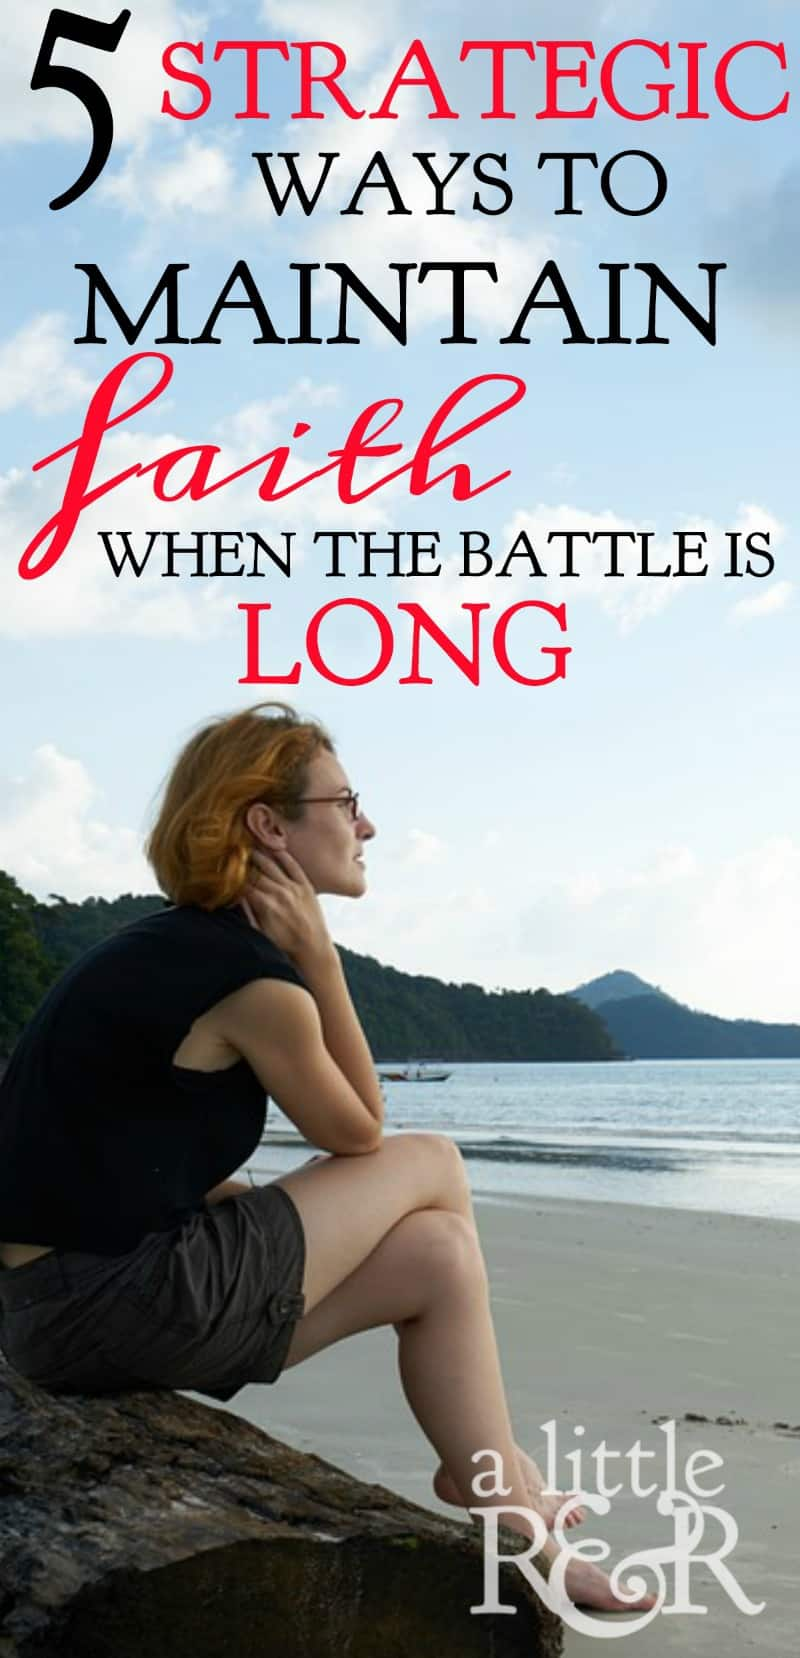 It is really hard to keep fighting when the battle is long and you grow tired and weary of fighting. Here are 5 things we learn from David's battle with Goliath that encourage us to maintain faith and joy in the battle. | A Little R & R | Rosilind Jukić | Christianity | Christian living | Christian blog | Christian faith | Spiritual Warfare | David and Goliath | Faith | #faith #Bible #Christianliving #Christian #Jesus #warroom #spiritualwarfare